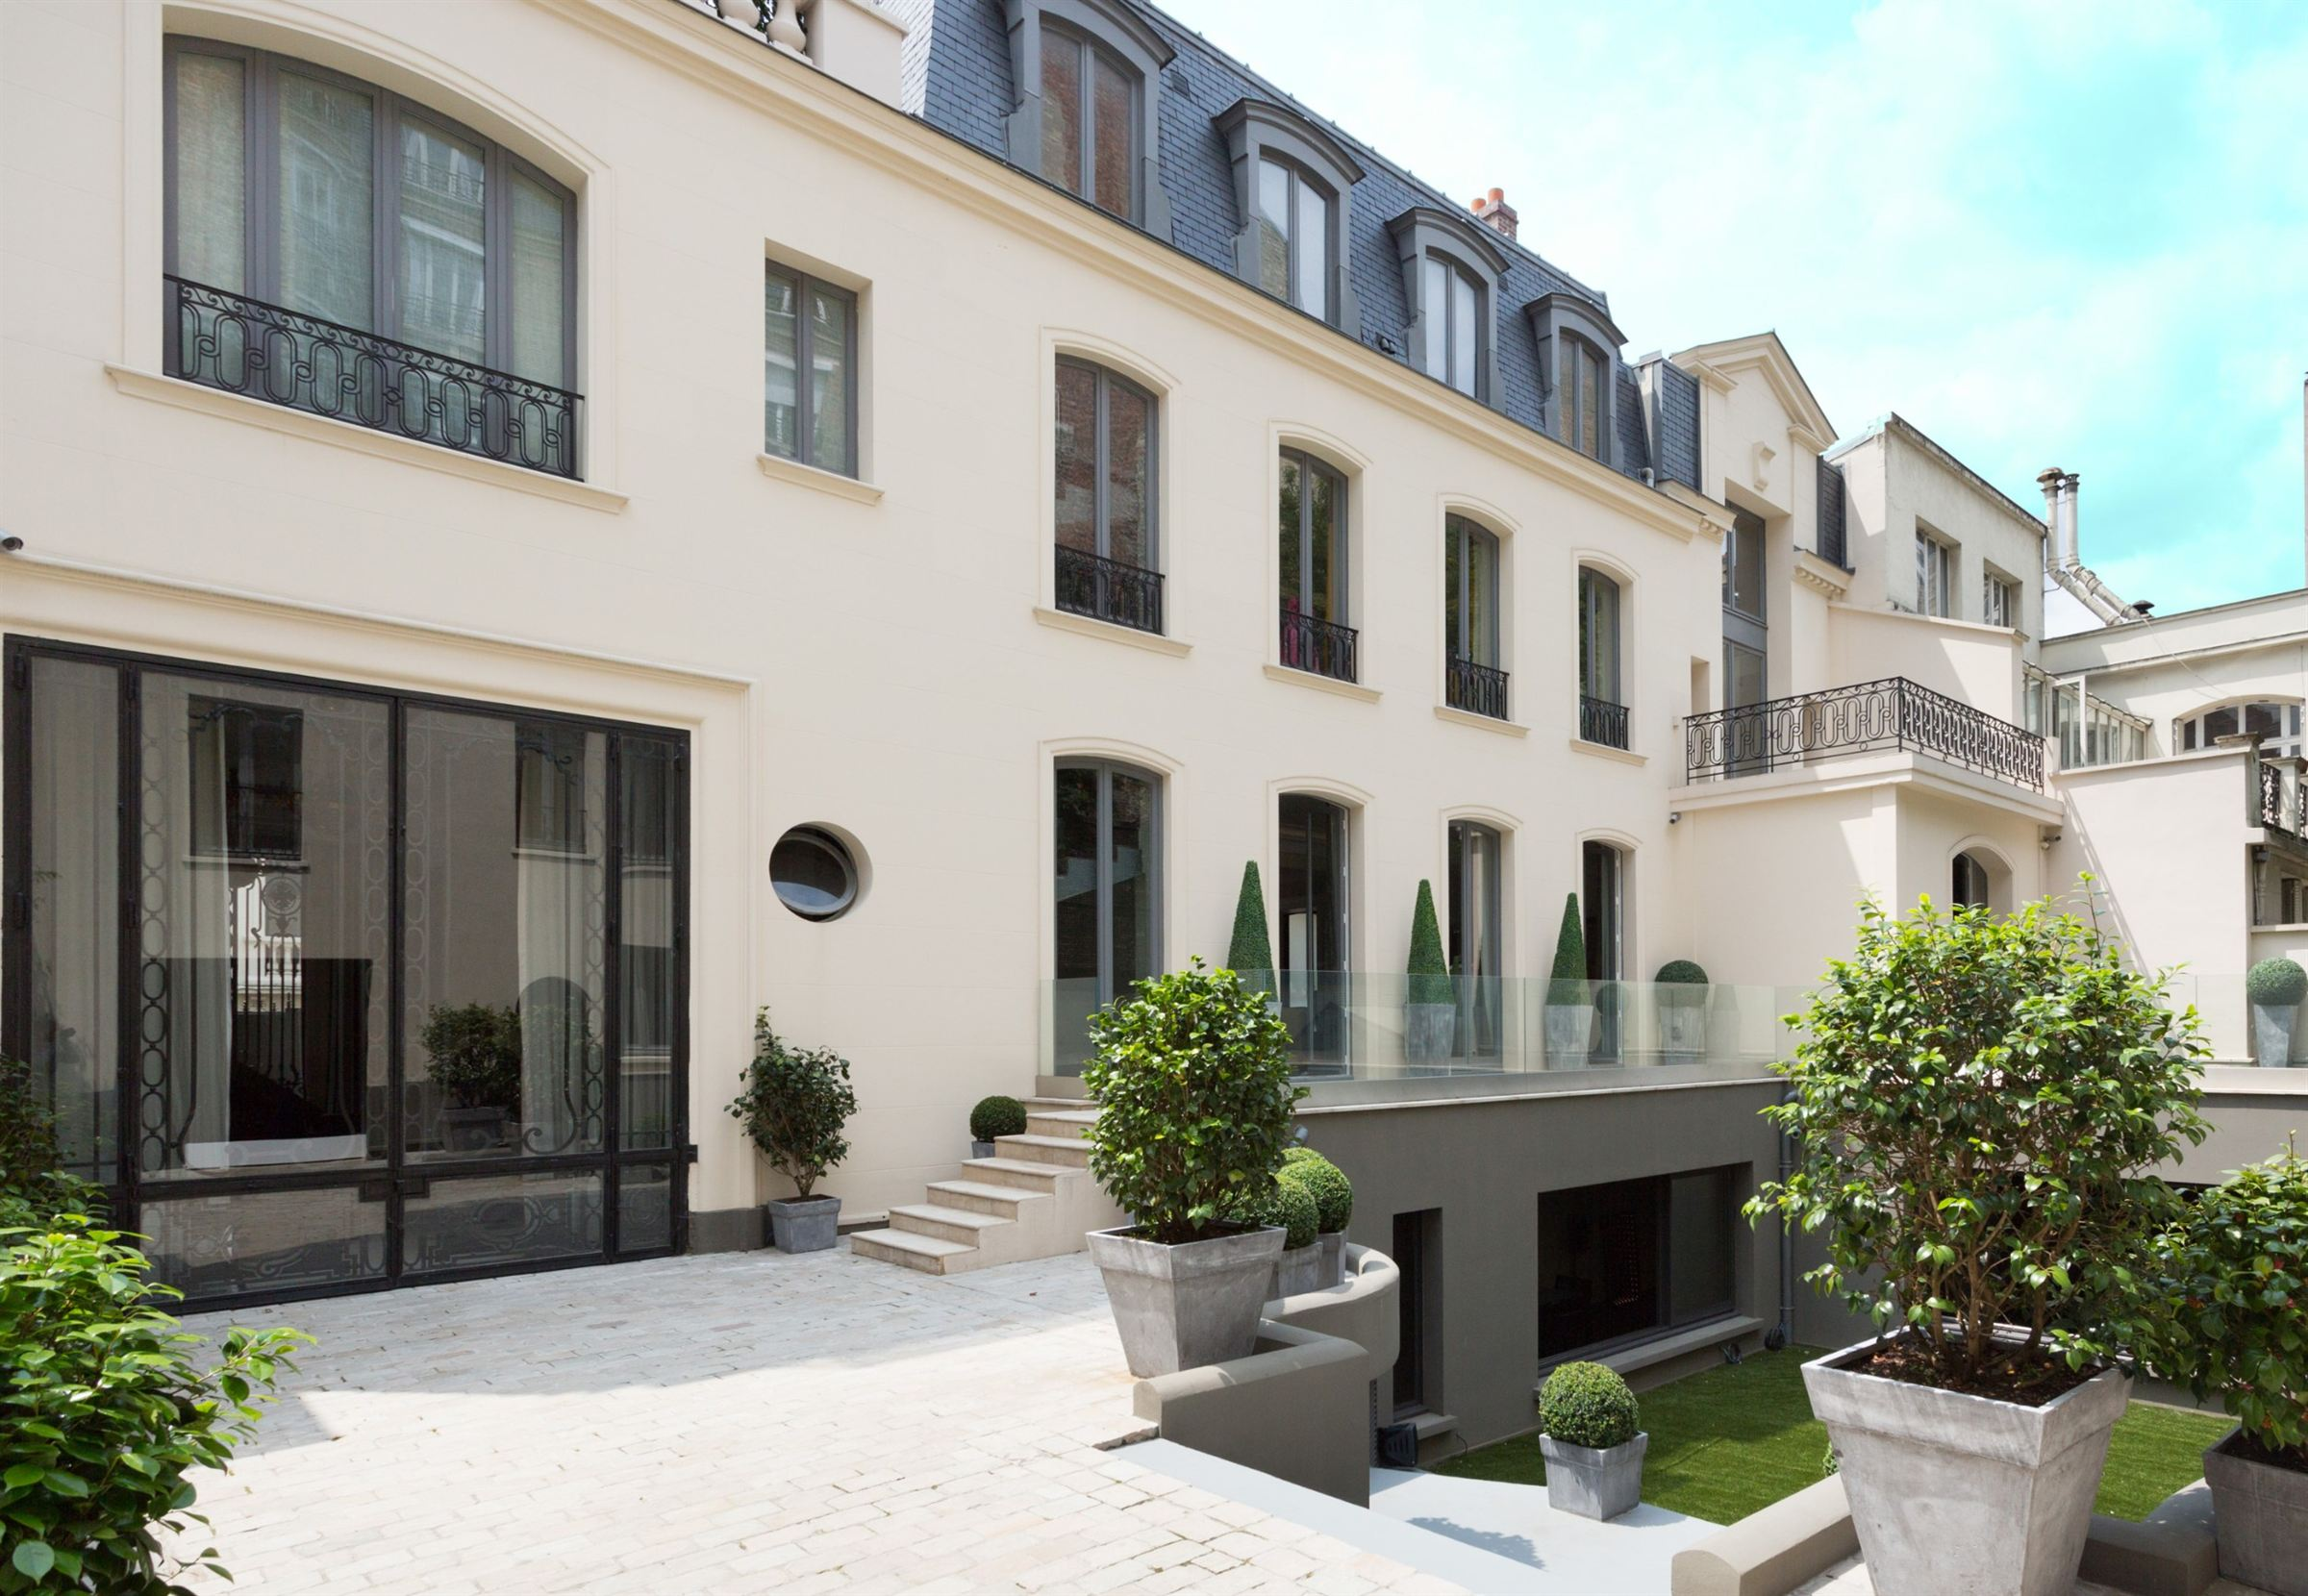 Single Family Home for Sale at Paris 16 - Prestigious Mansion of 1100 sq.m + 400 sq.m garden Paris, Paris 75016 France